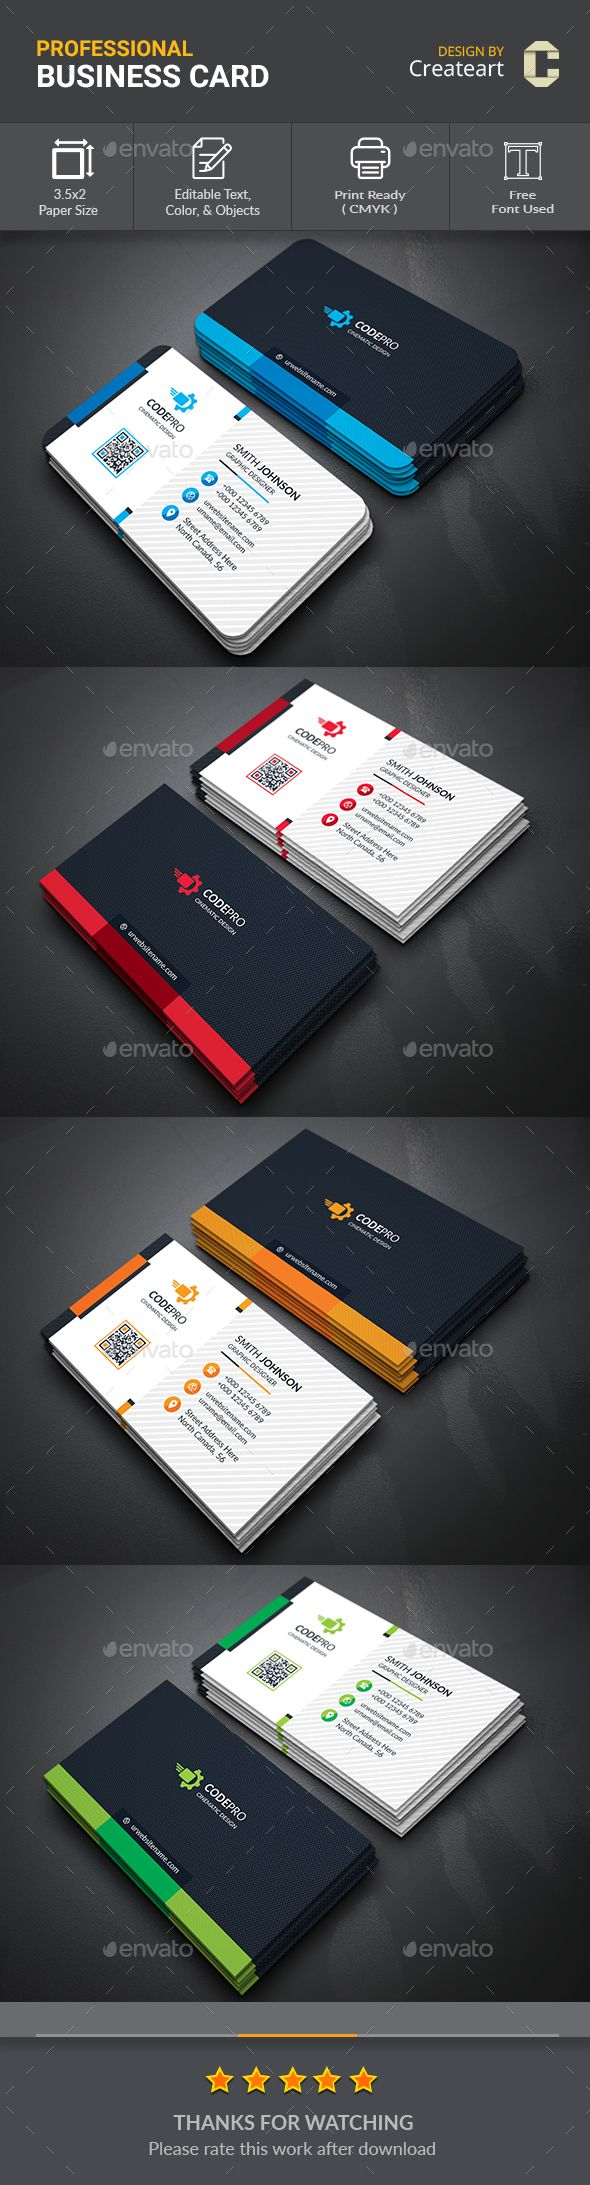 Business card business cards print templates business card this is clean business card template elegant page designs are easy to use and customize features of business card template 90 magicingreecefo Gallery